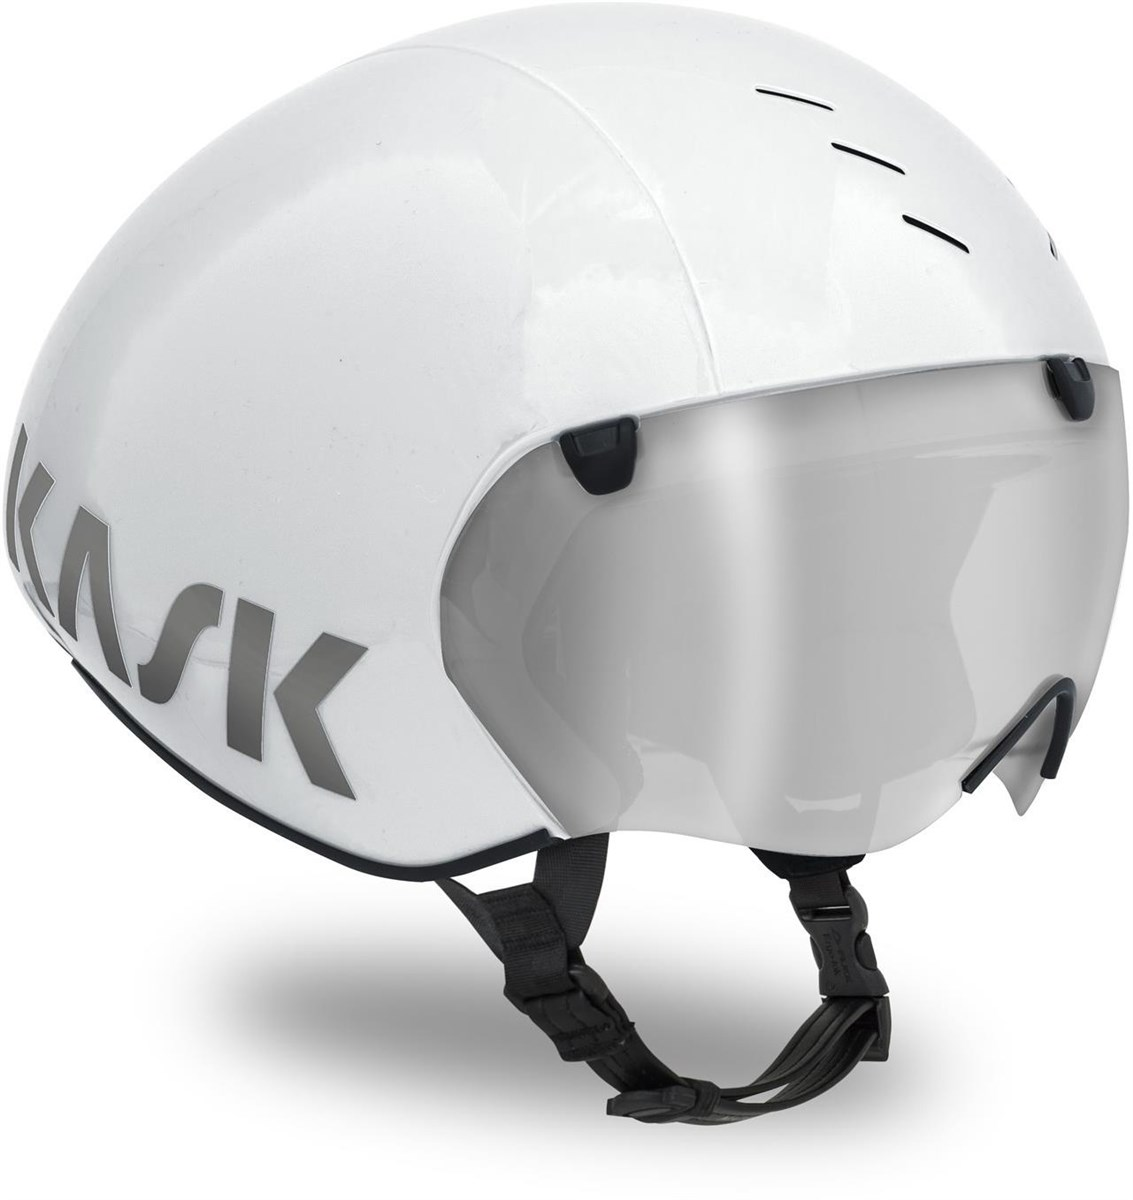 Kask Bambino Pro Time Trial Cycling Helmet 2016